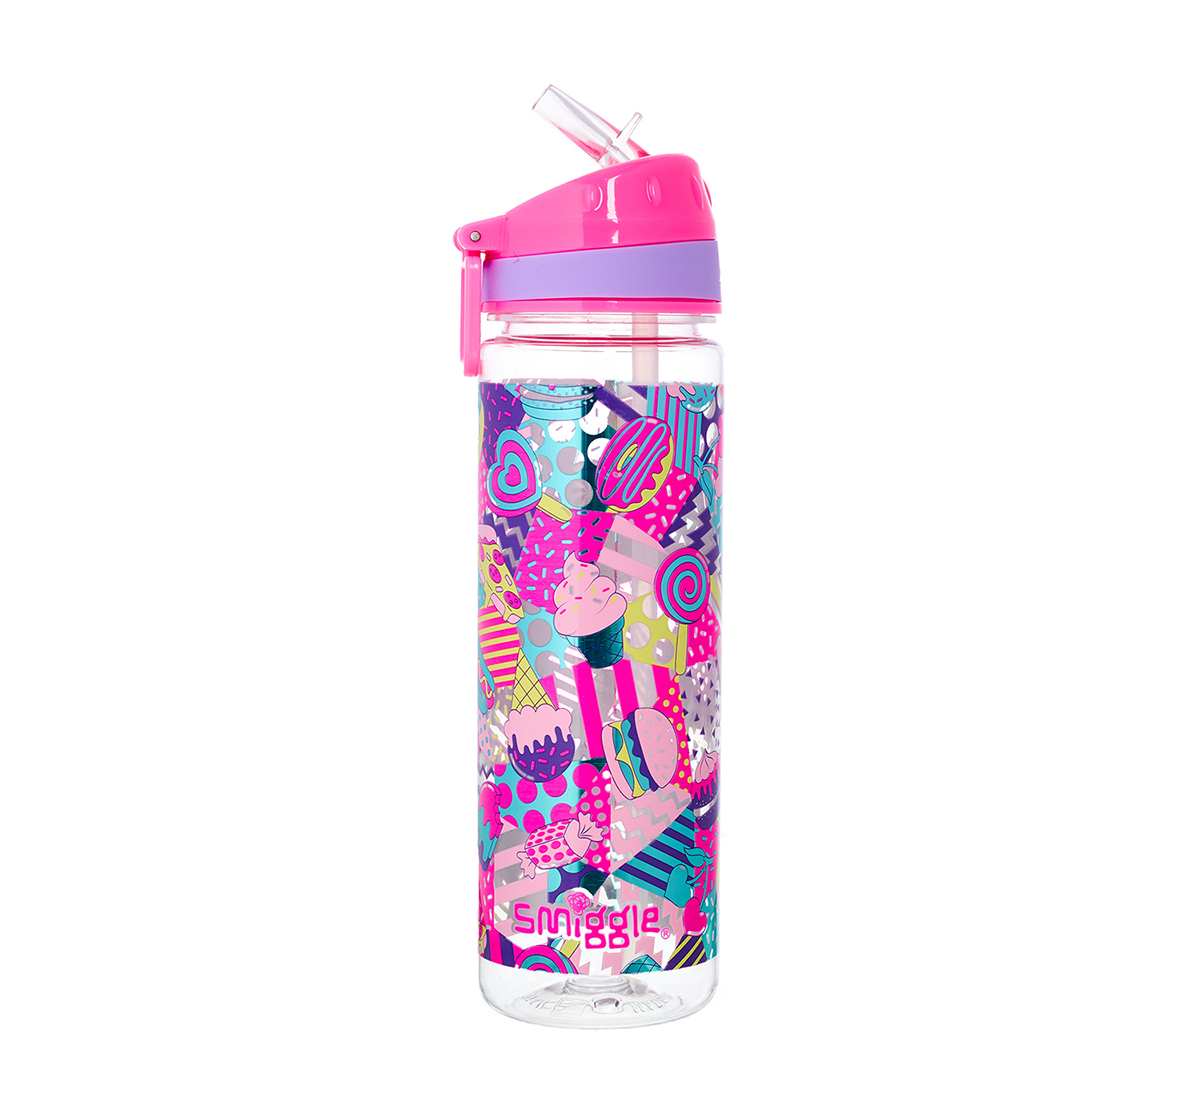 Smiggle   Smiggle Far Away Drink Bottle with Flip Top Spout - Ice-cream Print Bags for Kids age 3Y+ (Pink)